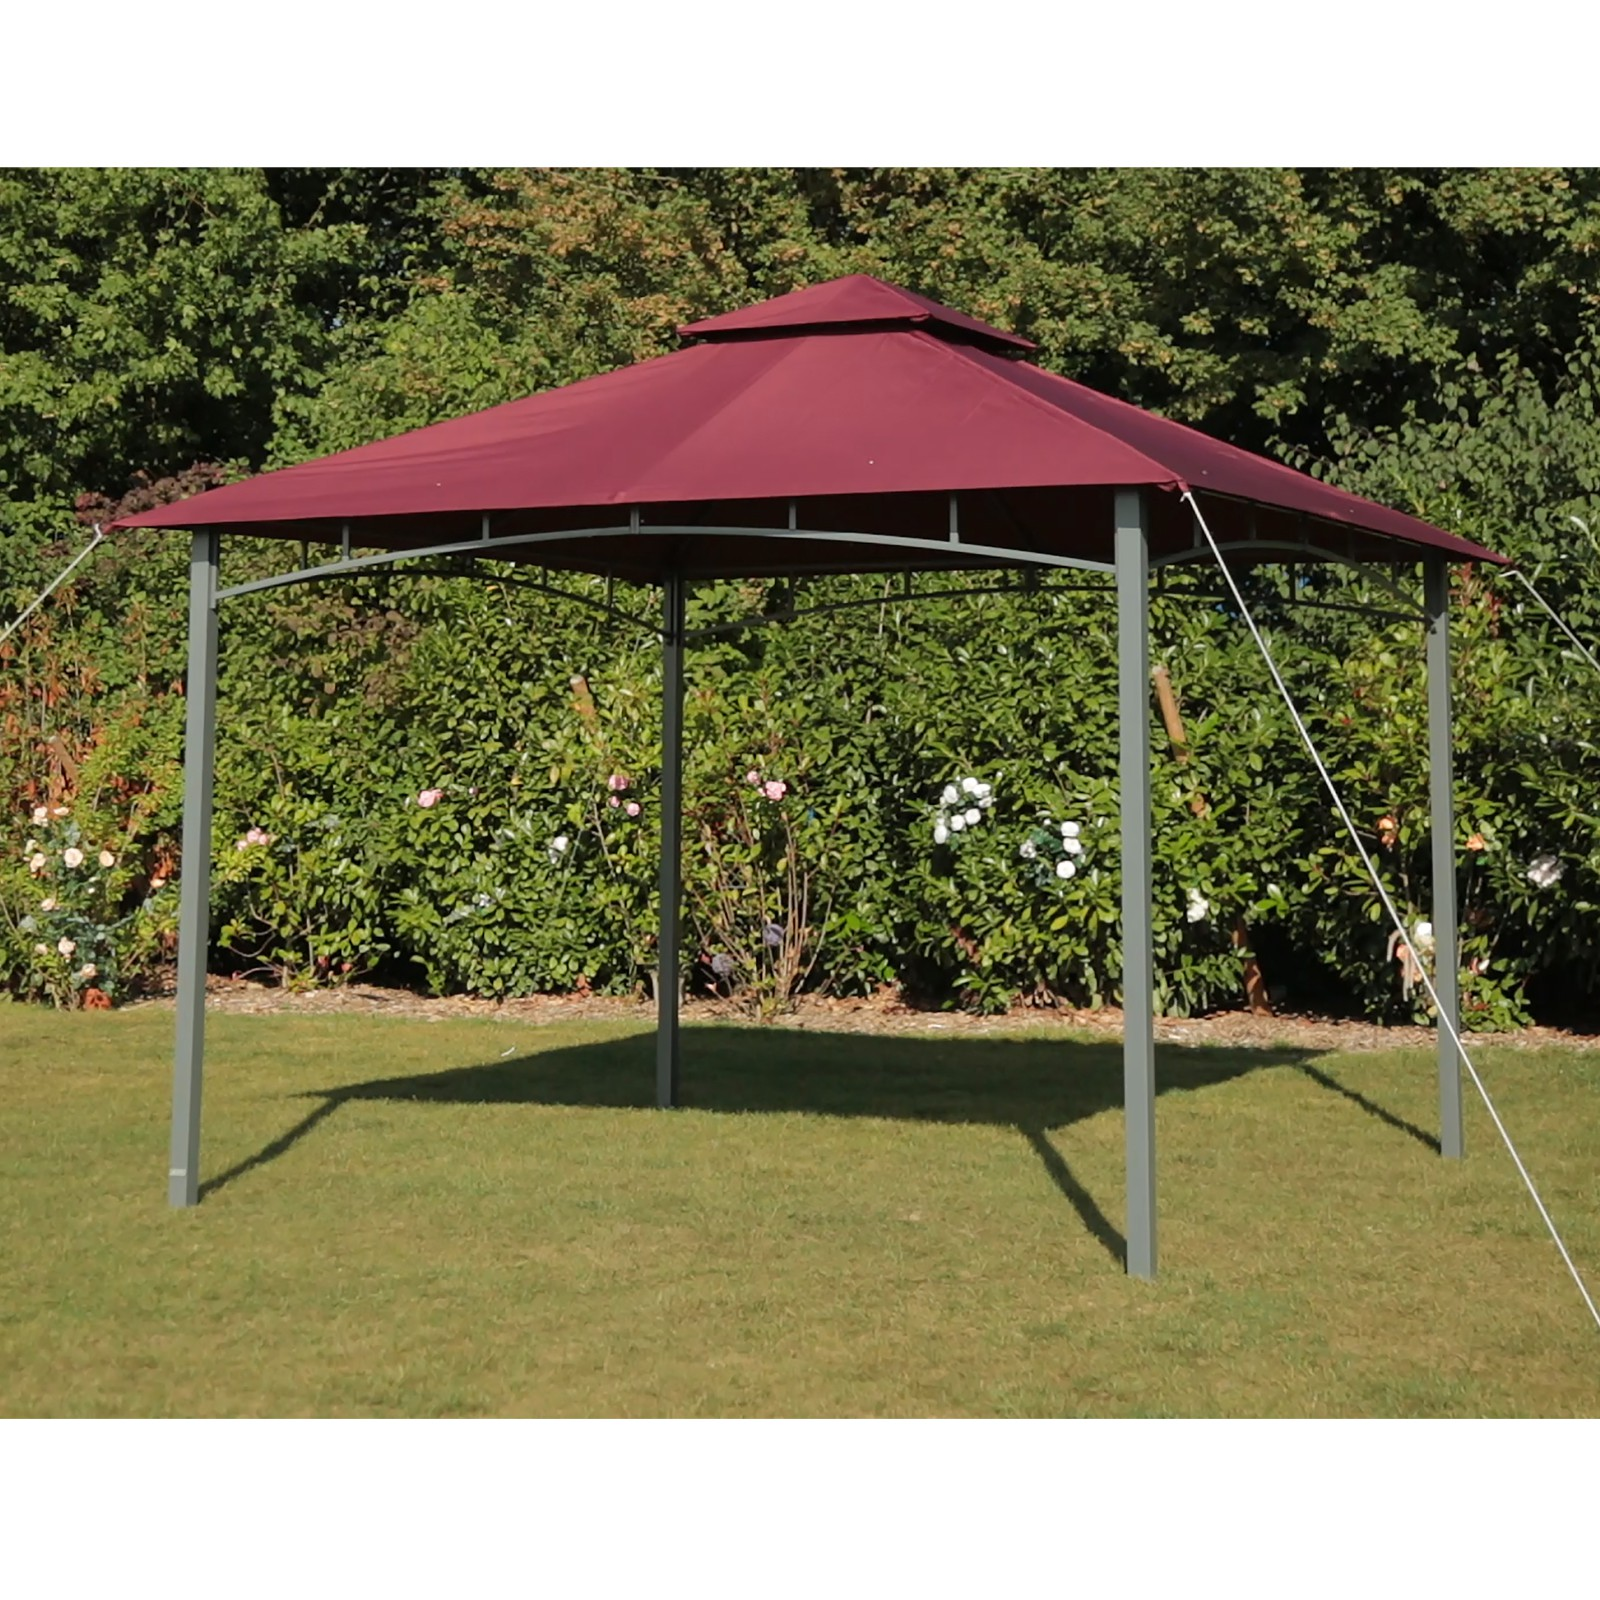 tepro gartenpavillon pavillon 3x3 m garten partyzelt gartenzelt waya burgund ebay. Black Bedroom Furniture Sets. Home Design Ideas